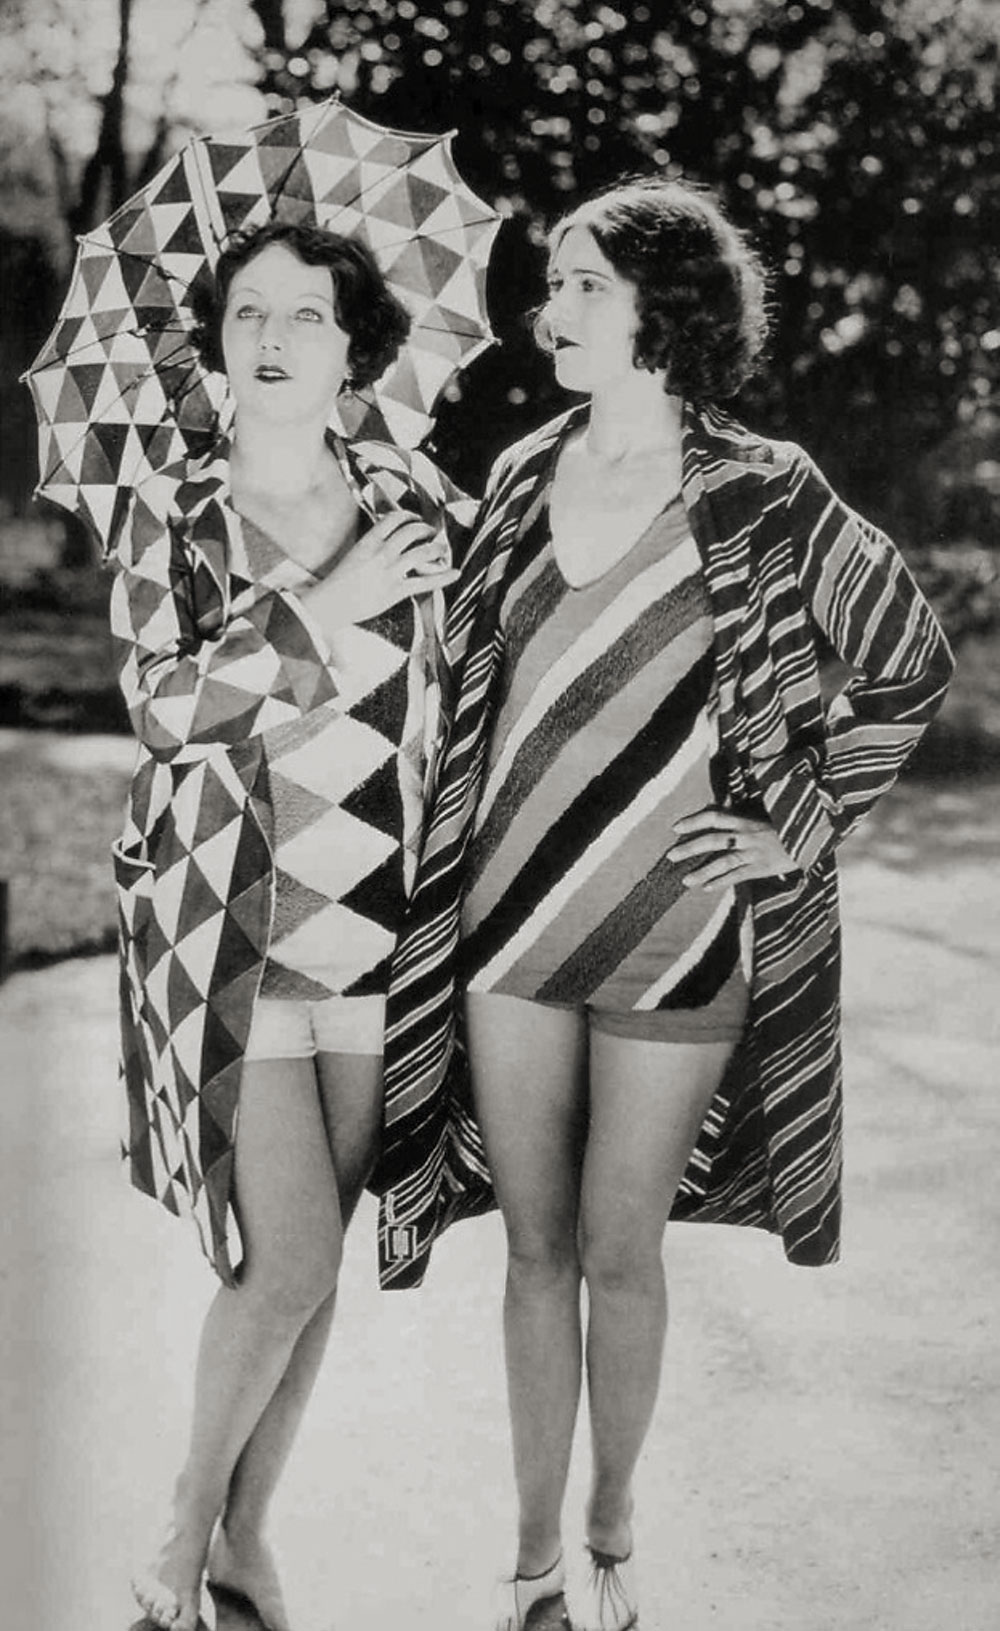 bathing-suits-designed-by-delaunay-c1920s-web.jpg